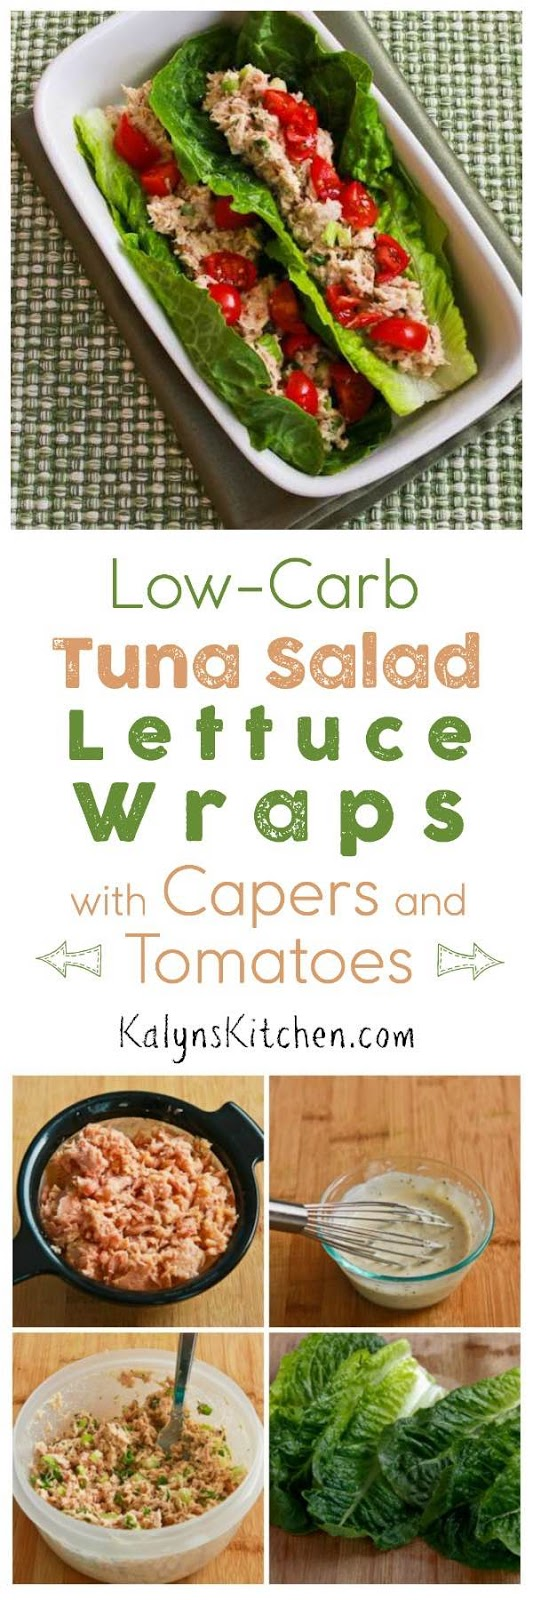 Lettuce Wrap Fish Tacos With Spicy Cabbage Slaw And Avocado Recipe ...